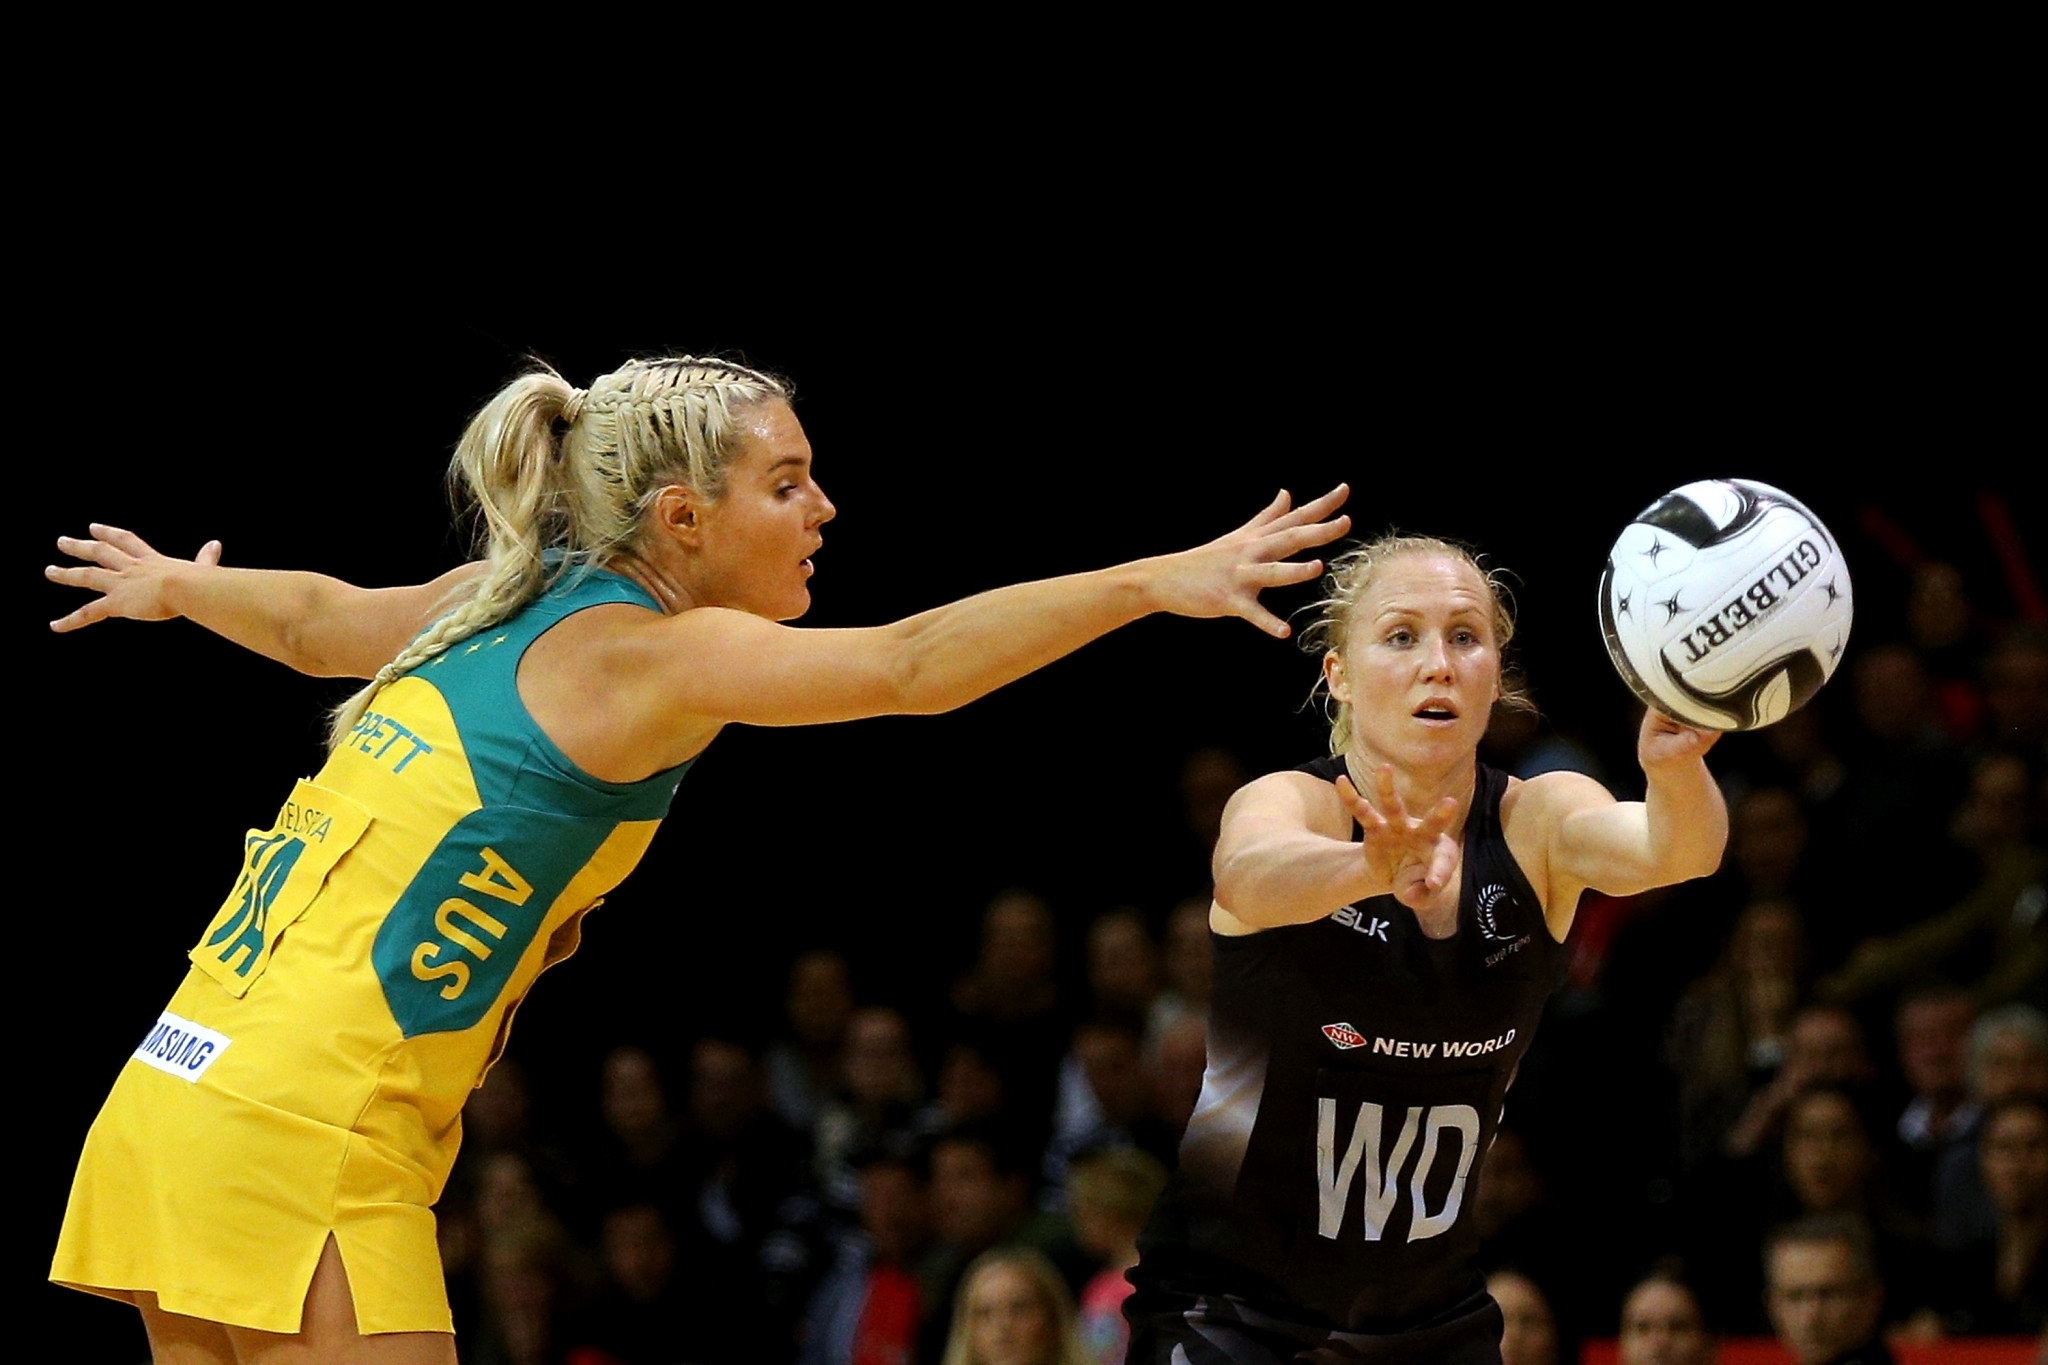 Double Commonwealth Games gold medallist makes herself unavailable for New Zealand netball team at Gold Coast 2018